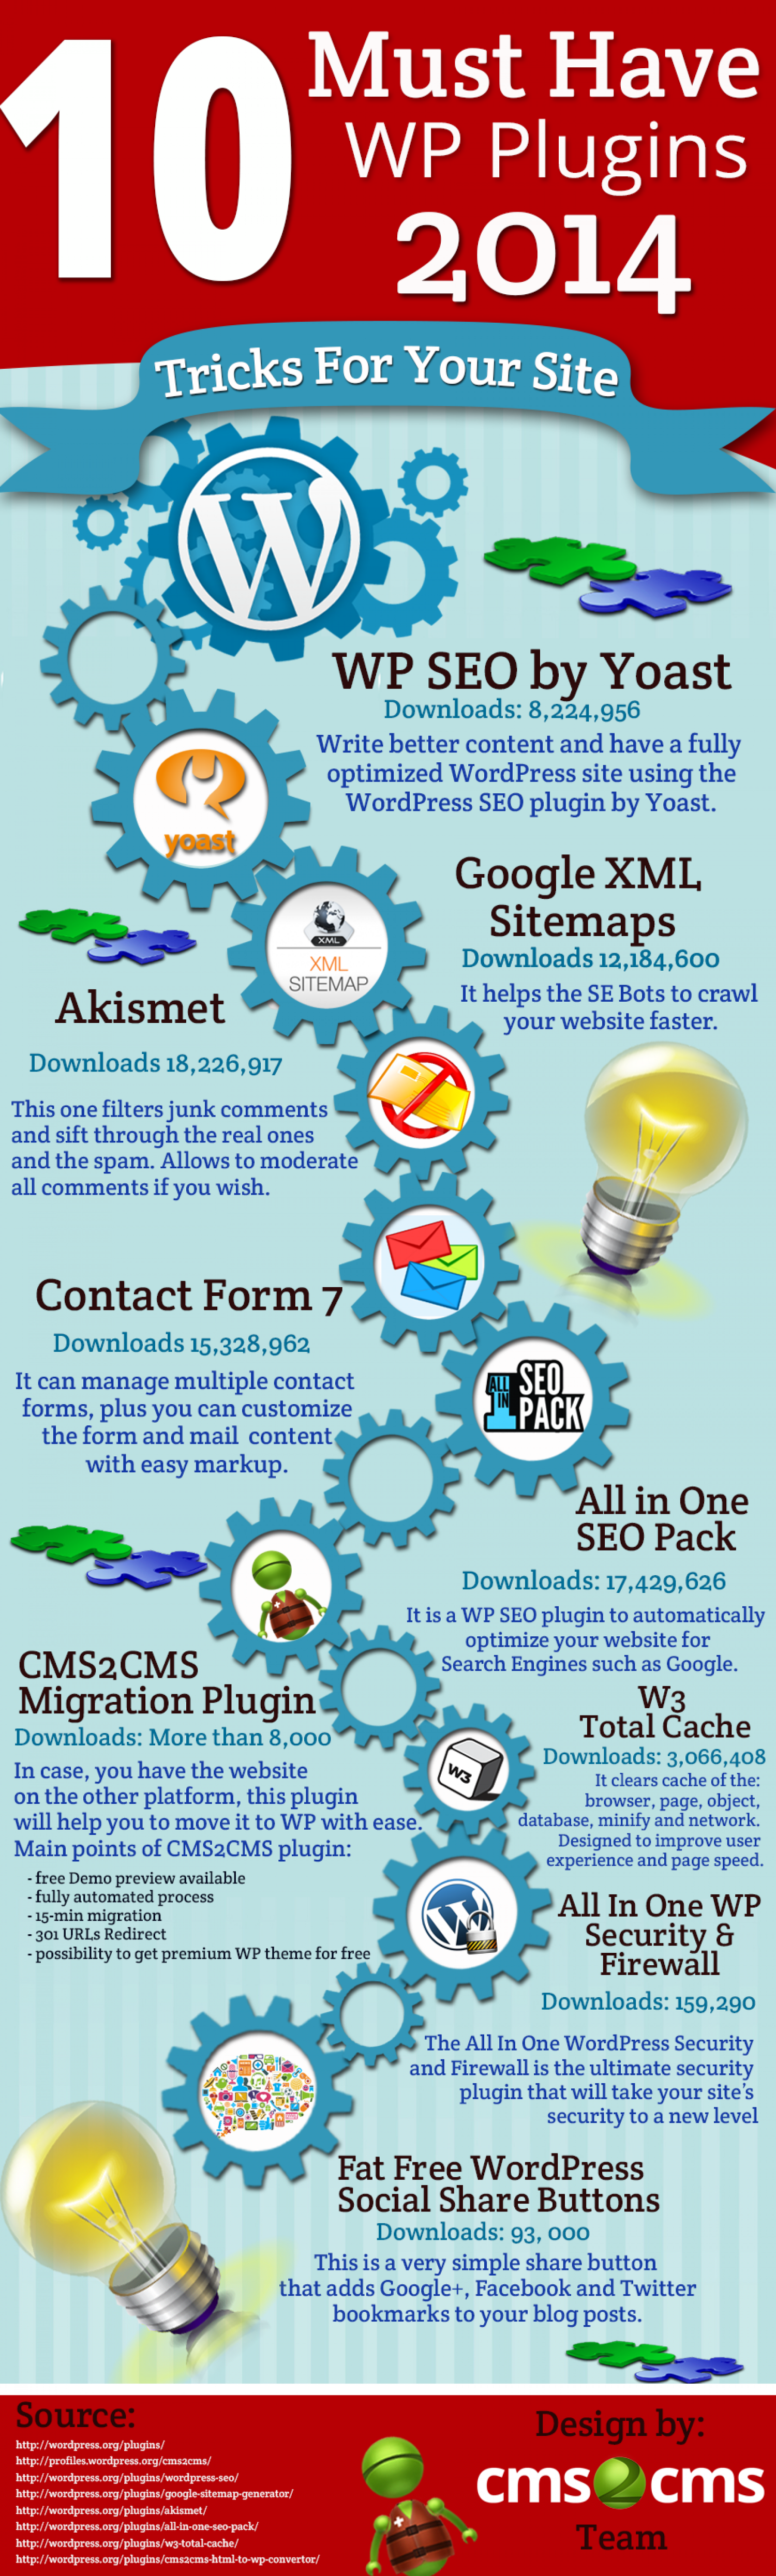 10 Must Have WP Plugins 2014 Infographic